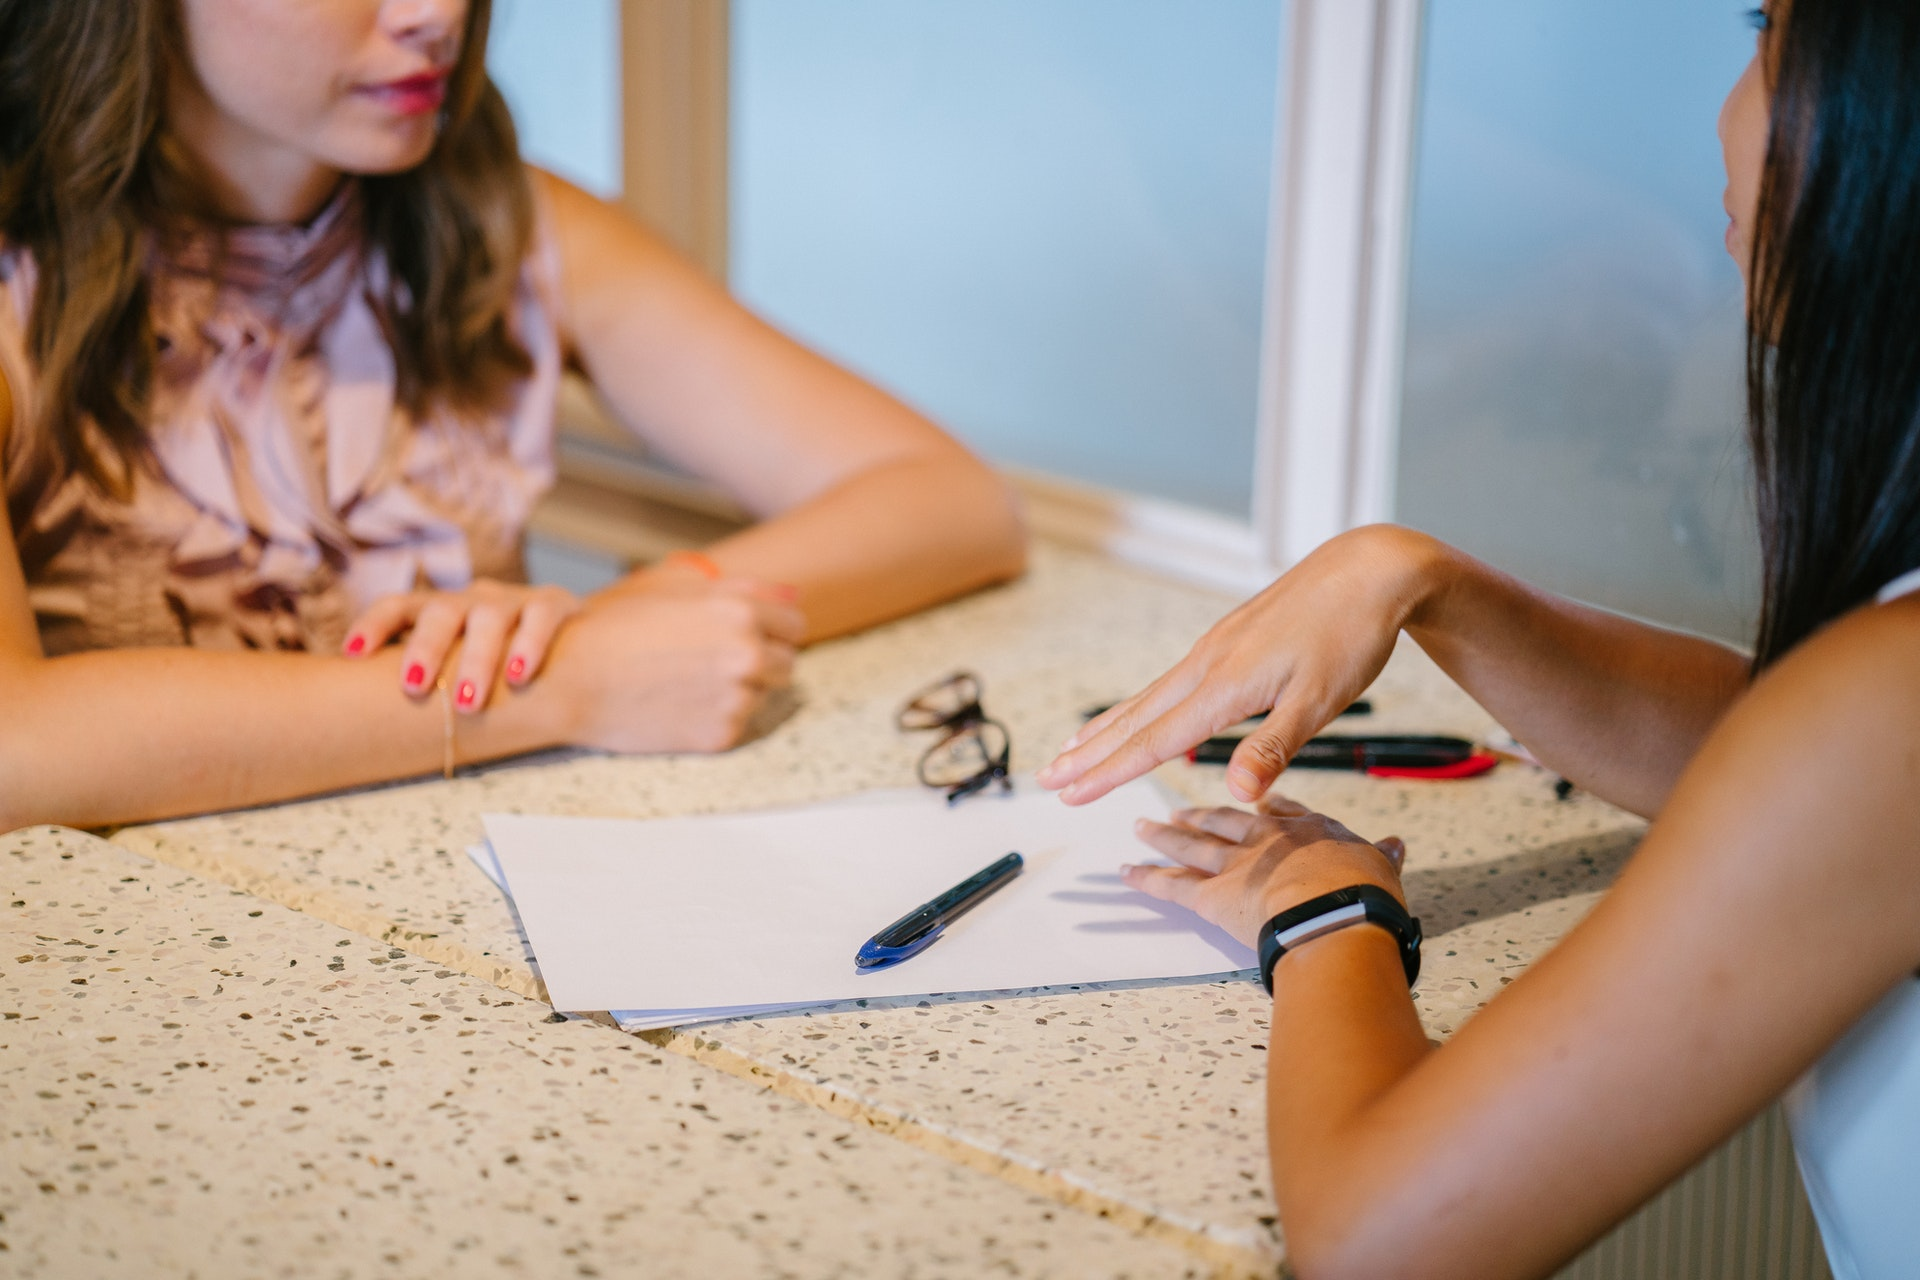 Two women sit across from a table talking to each other, with a pile of notes and a pen in between them.